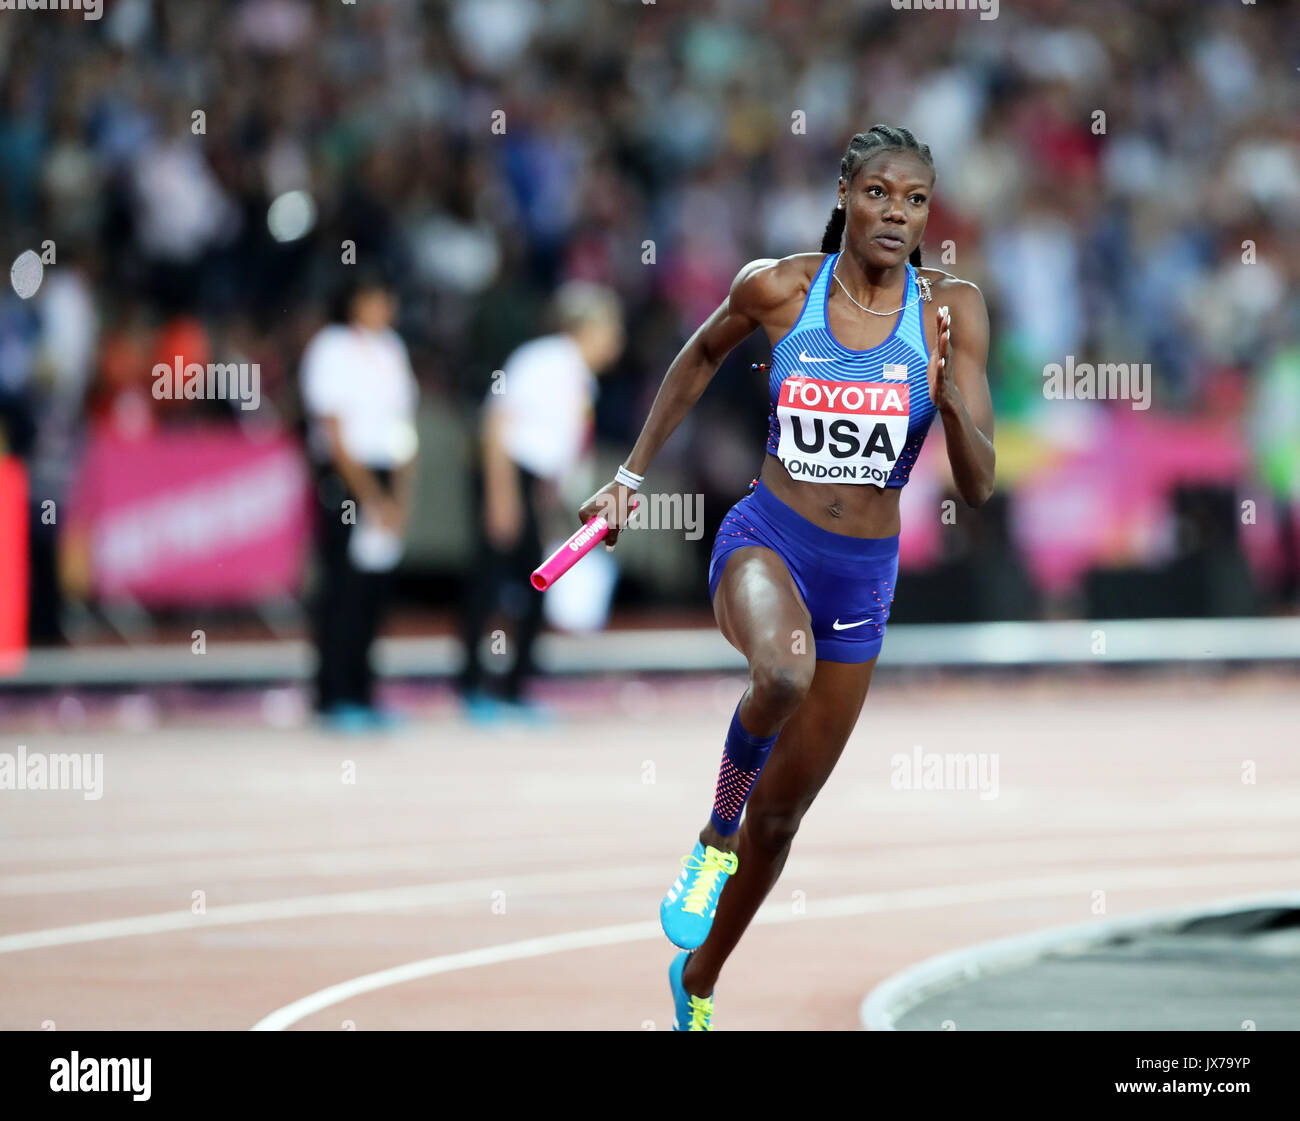 Shakima WIMBLEY (USA) running the third leg for in the Women's 4 x 400m Final at the 2017 IAAF World Championships, Queen Elizabeth Olympic Park, Stratford, London, UK. - Stock Image